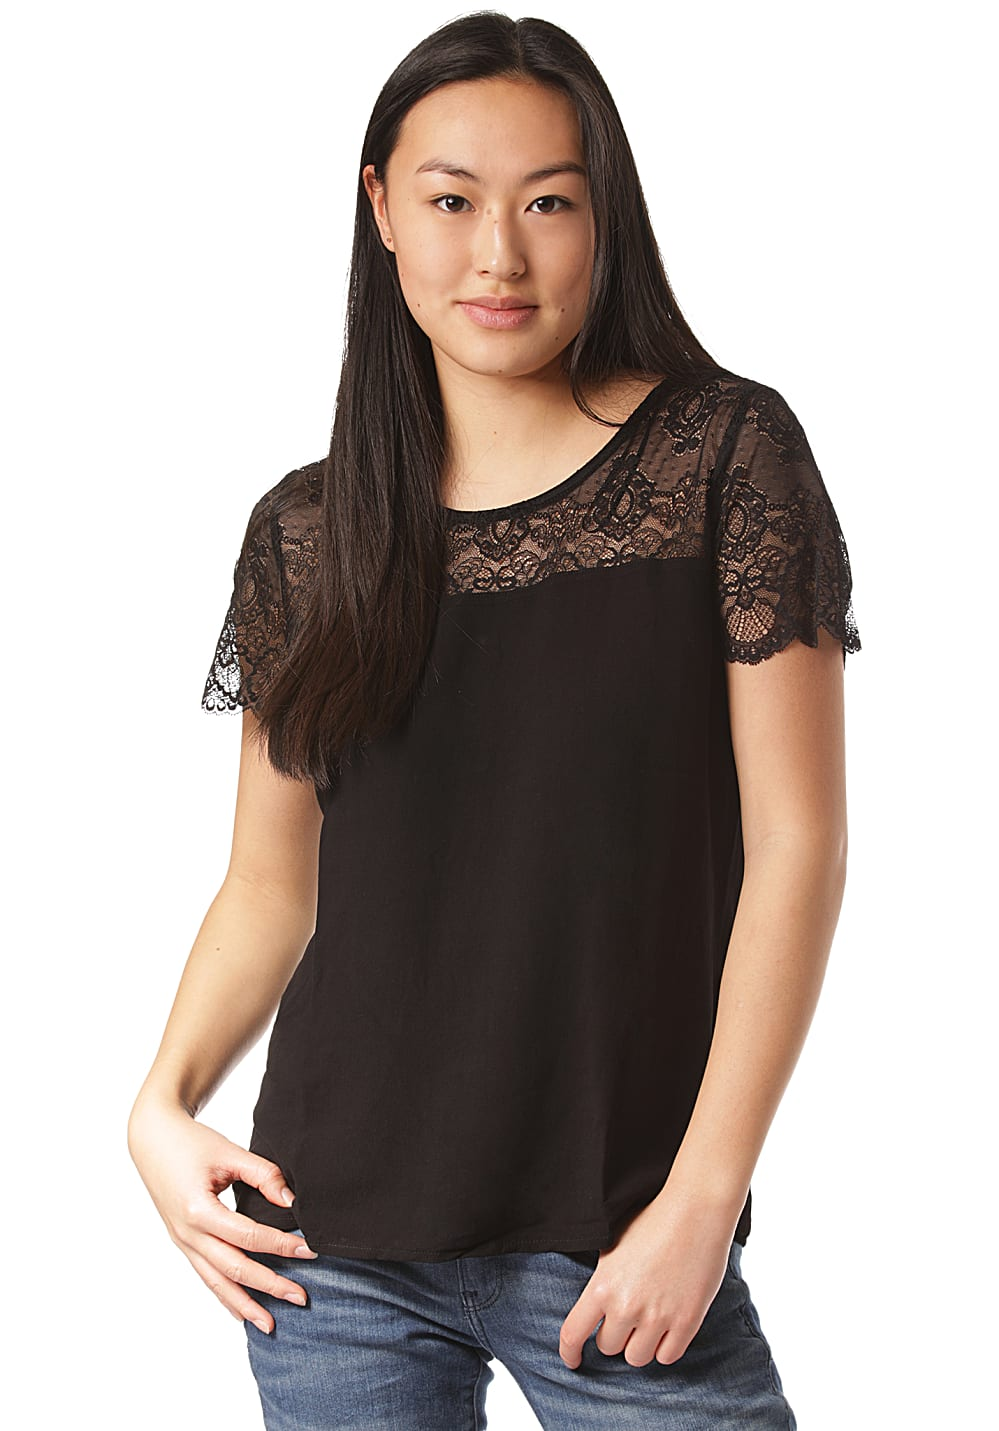 Vila Vimero Lace Top Bluse für Damen Schwarz Planet Sports